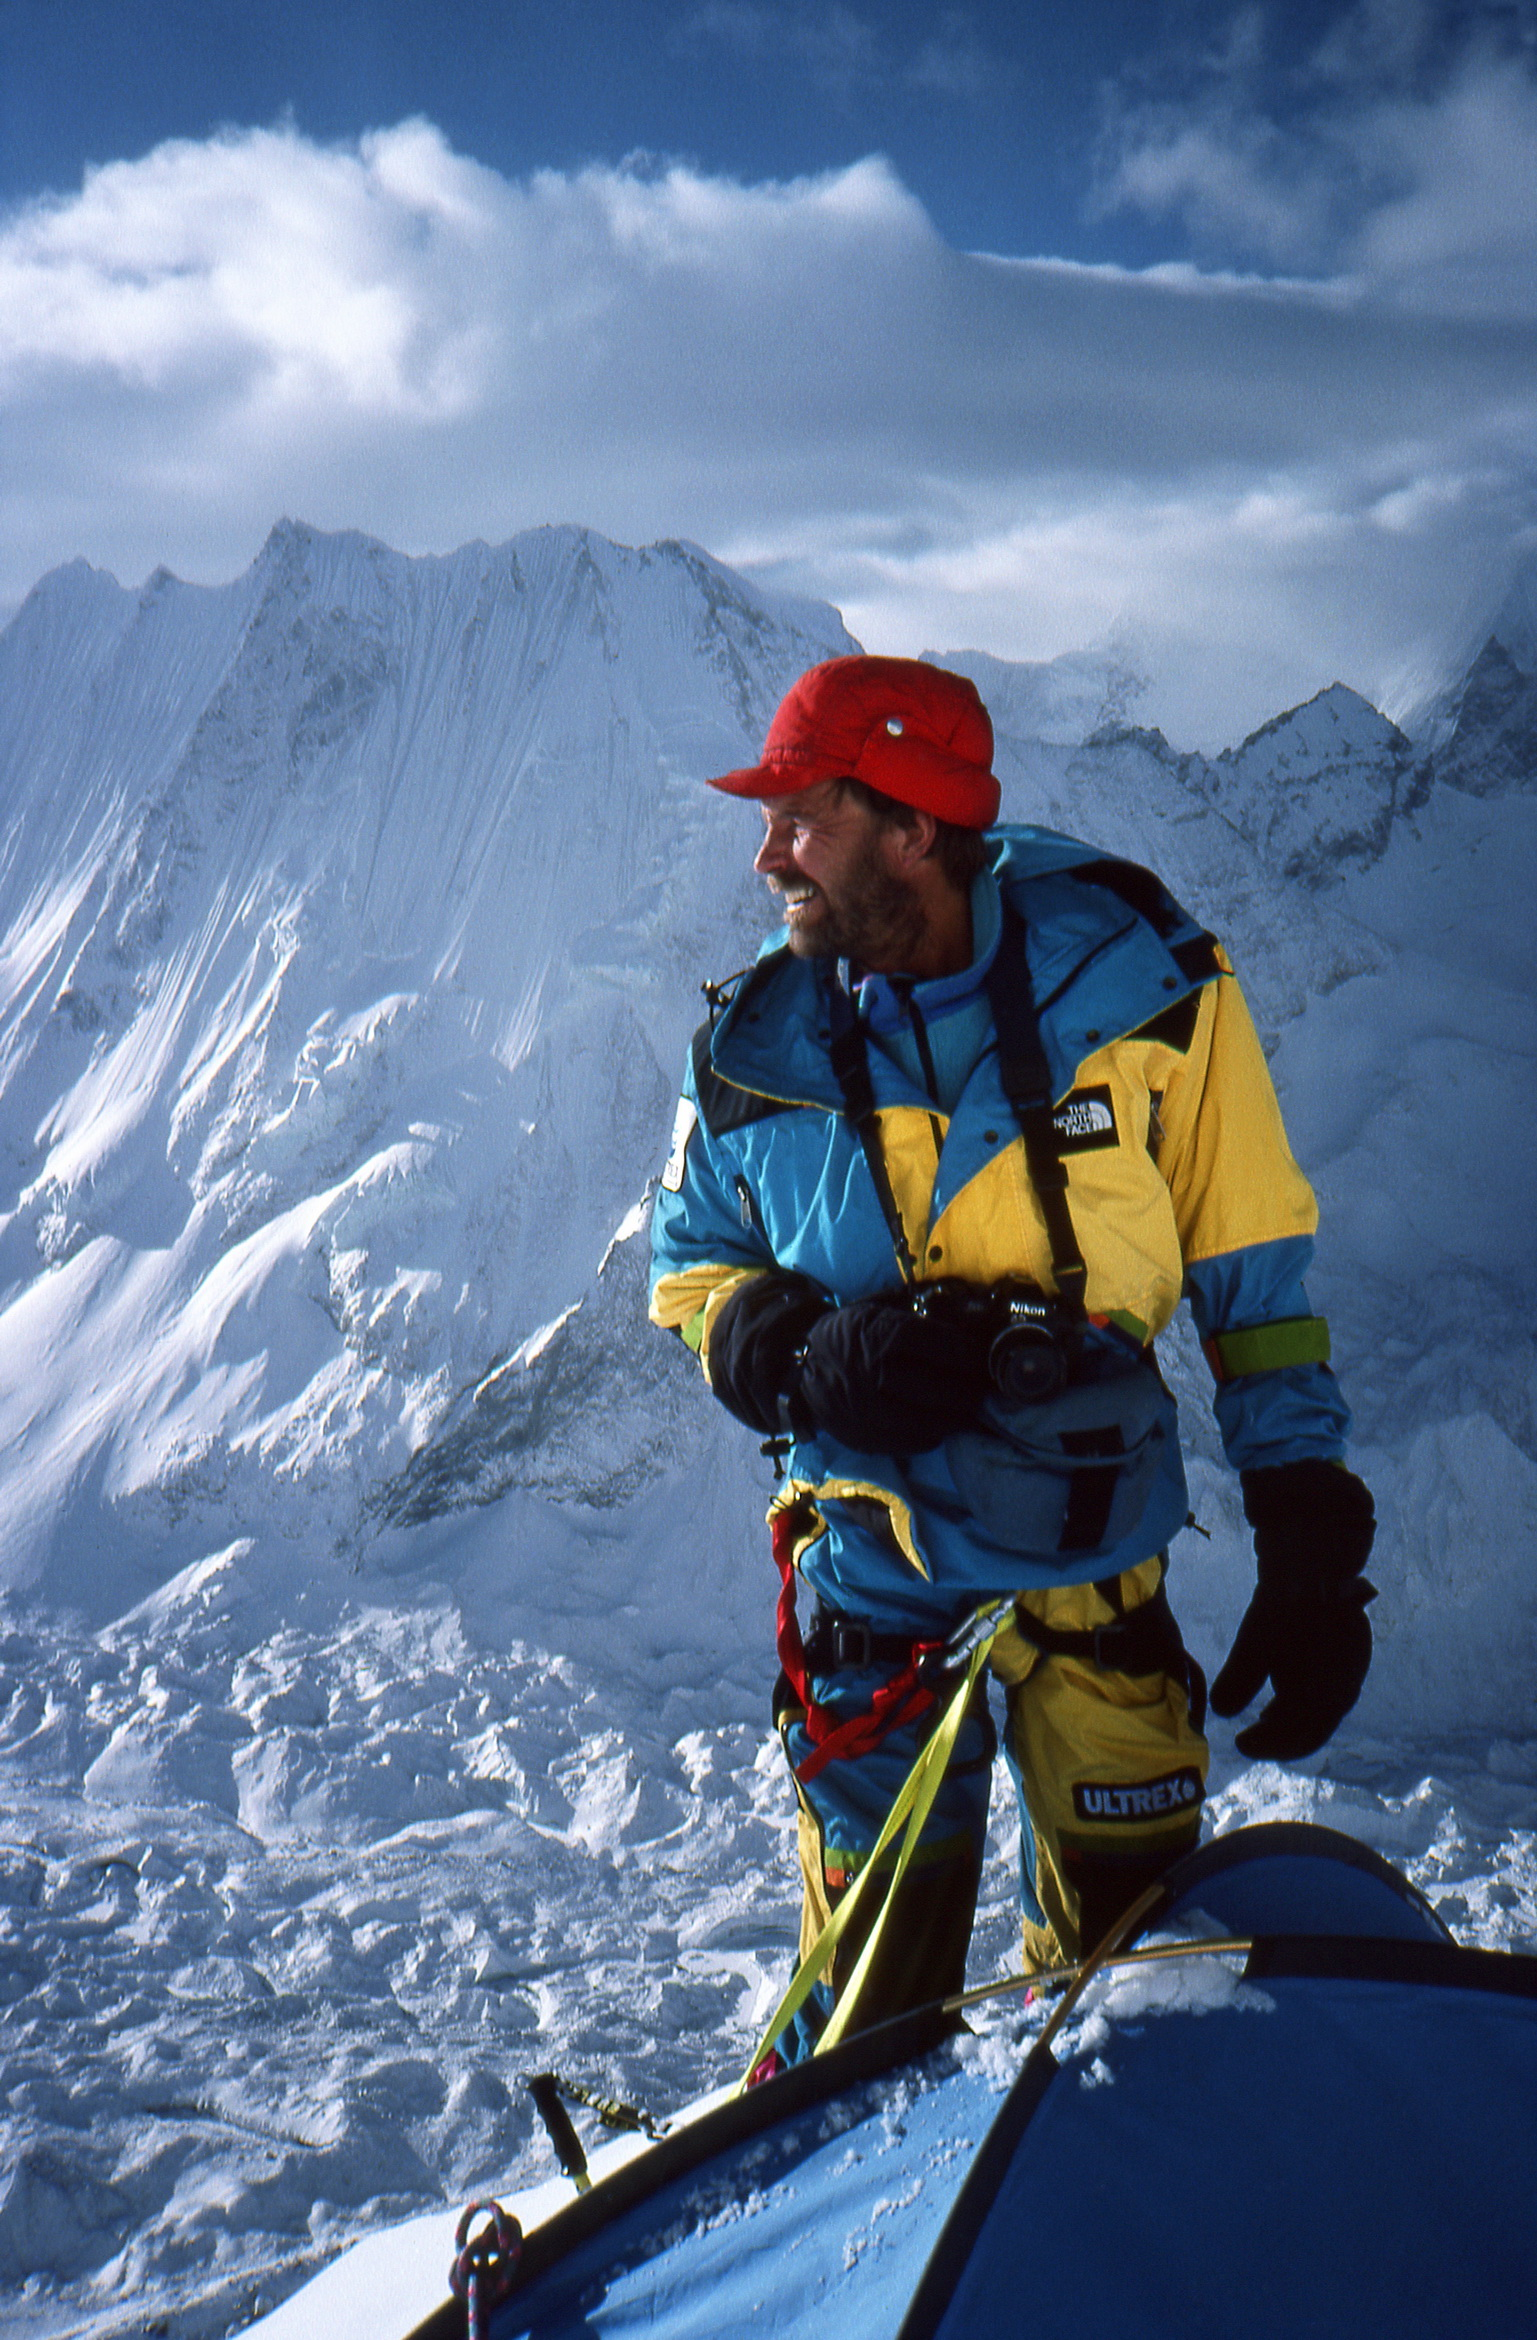 John Roskelley at Camp 3 on Menlungtse (7181m), Tibet, in 1990. [Photo] John Roskelley collection